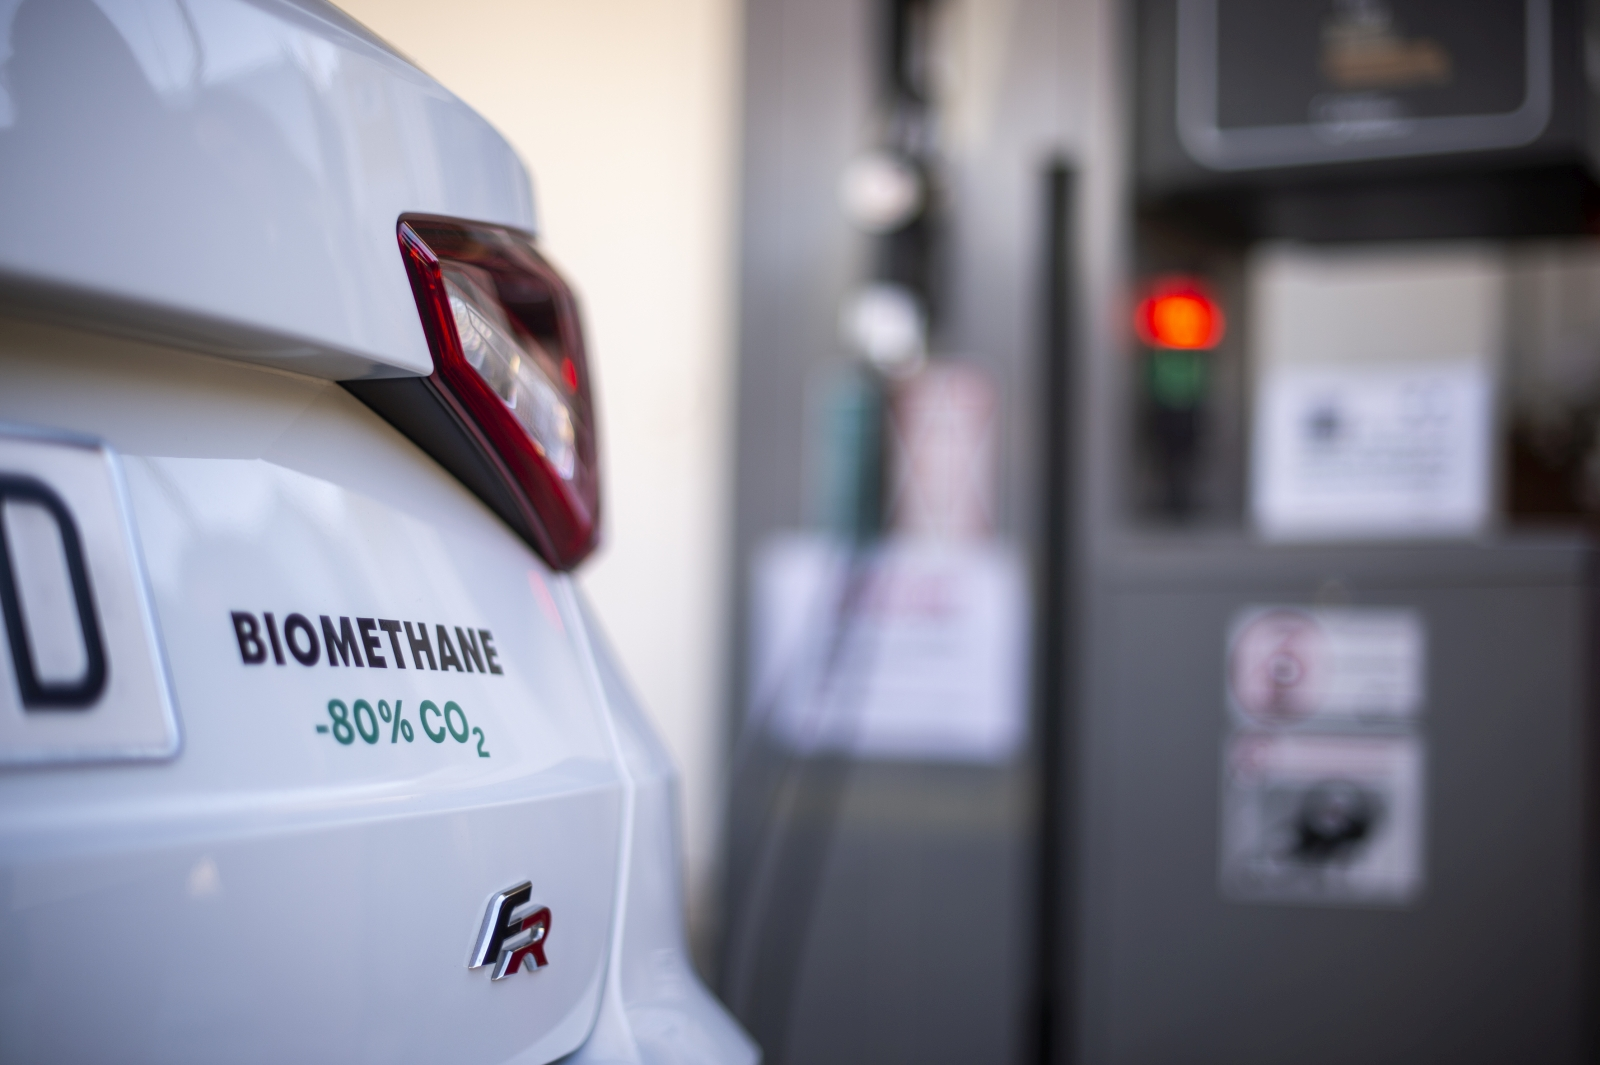 SEAT-participates-in-a-new-European-project-to-generate-biomethane-from-waste_01_HQ